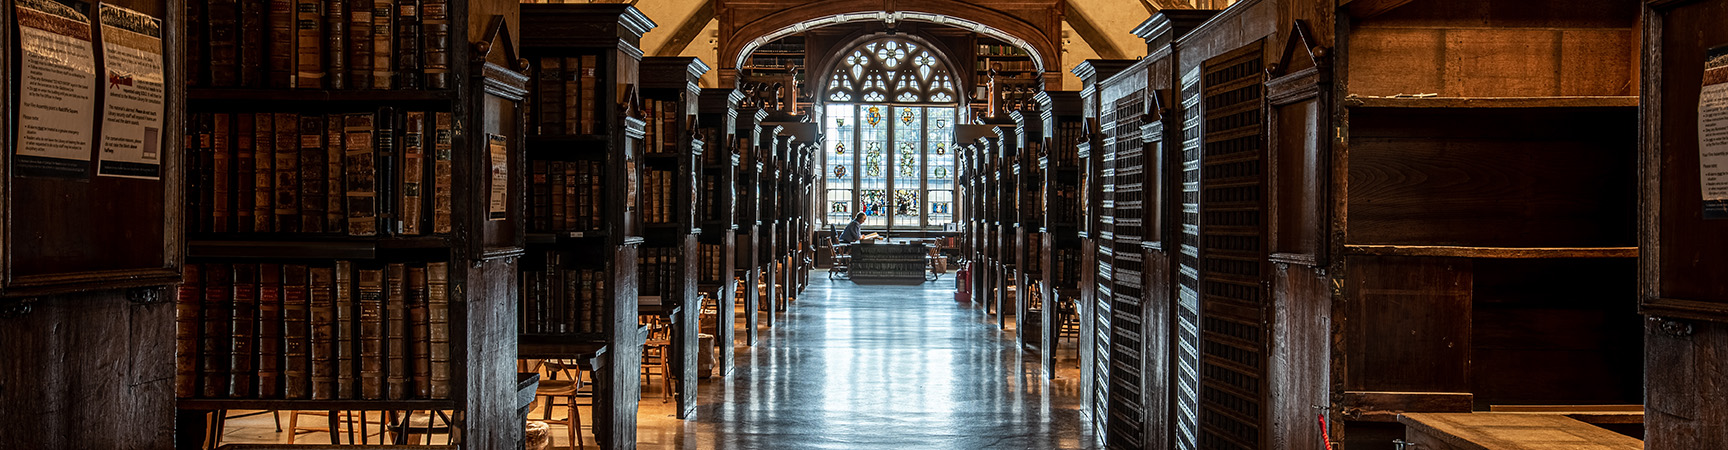 A long room with a stained glass window at the end, there are wooden book shelves and alcoves on either site